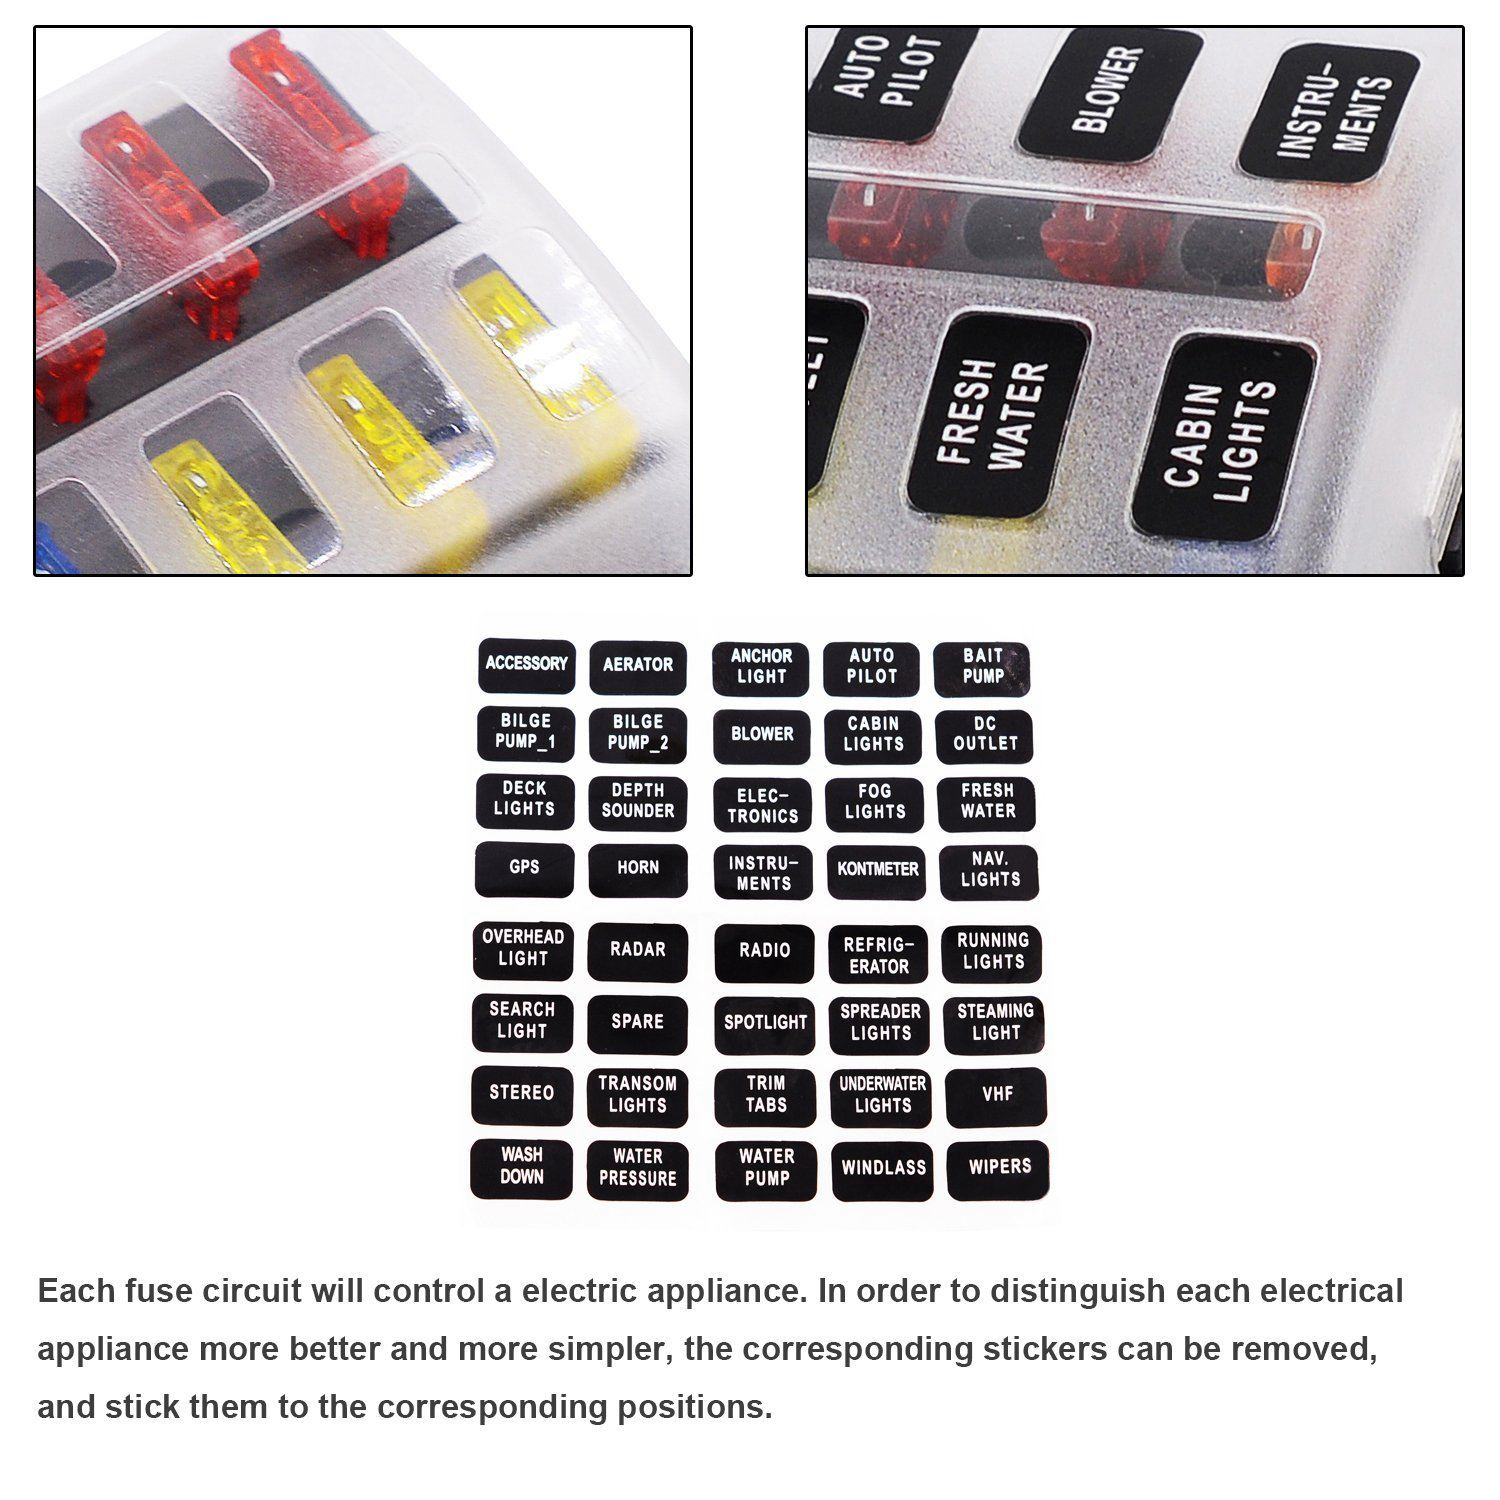 New 12 Way Blade Fuse Box Holder with LED Warning Light Kit for Automotive  Car Marine Boat,5A 10A 15A 20A Free Fuses Led Mar26-in Fuses from Home ...